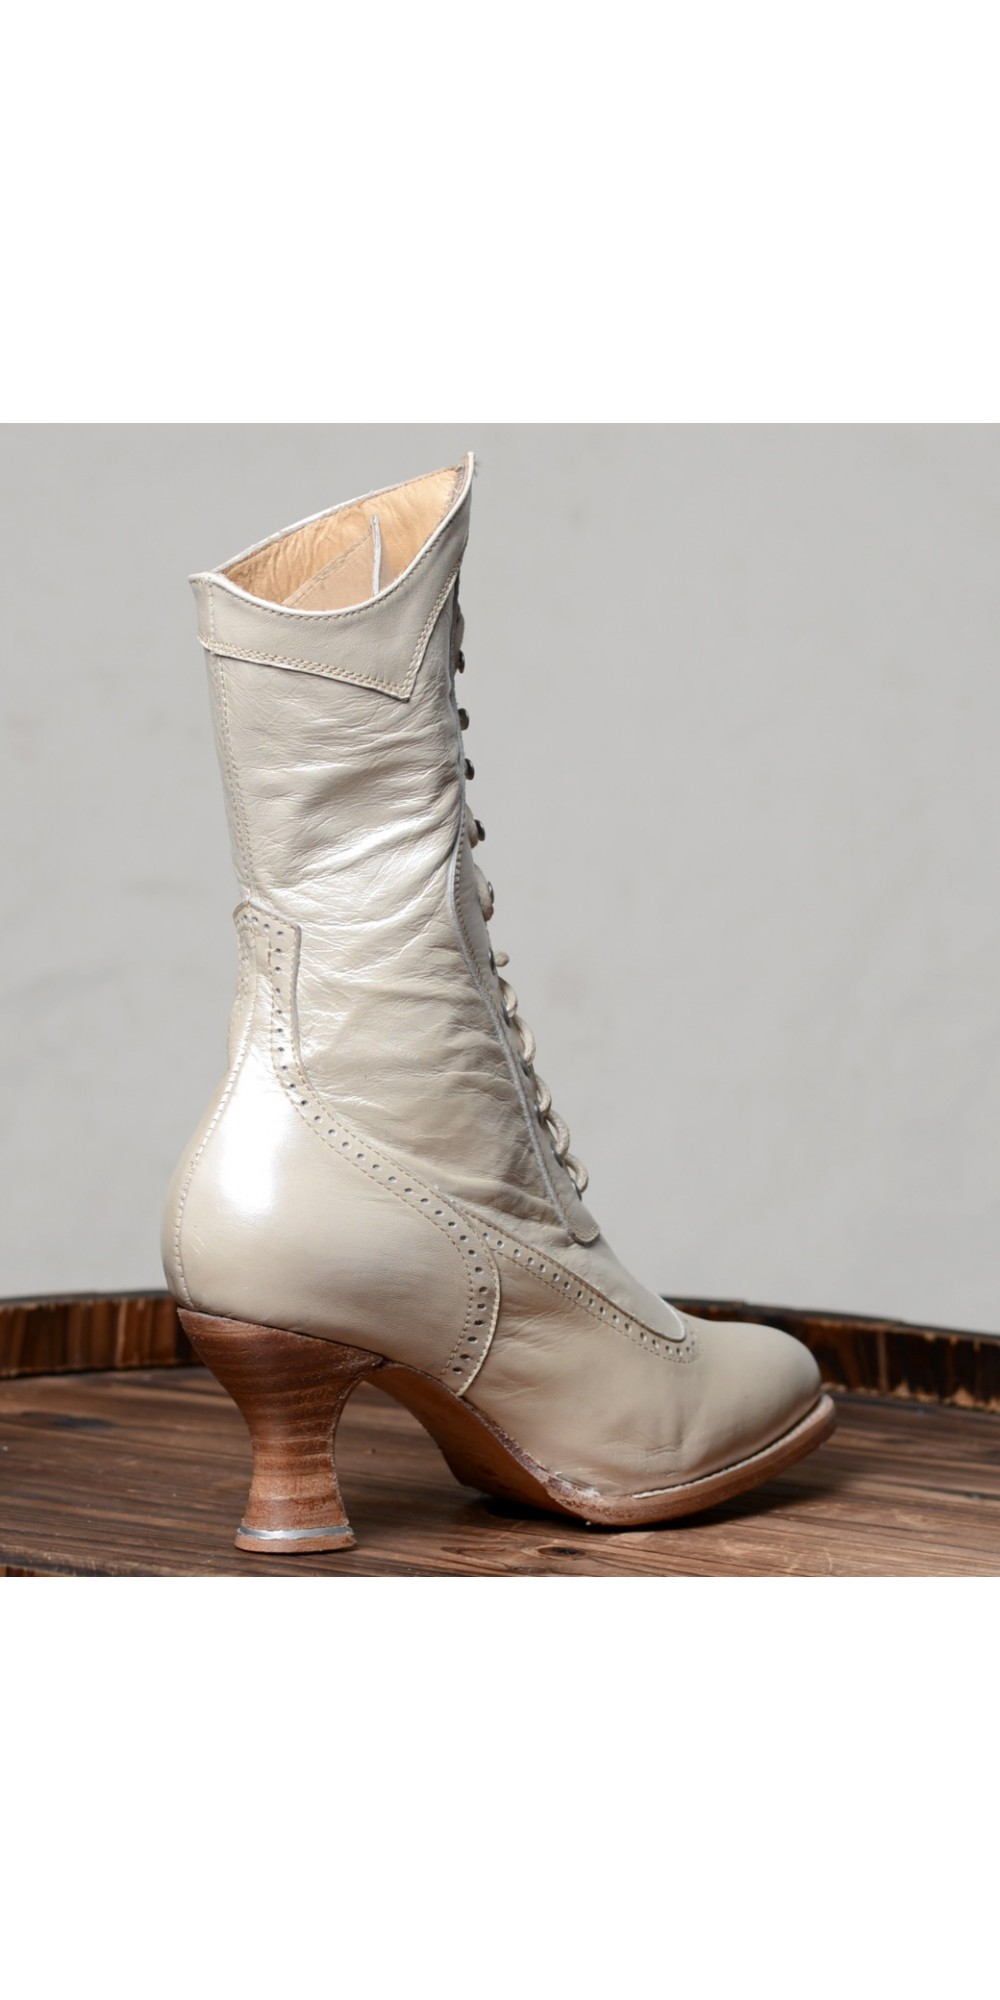 Modern Victorian Lace Up Leather Boots in Pearl Oak Tree Farms